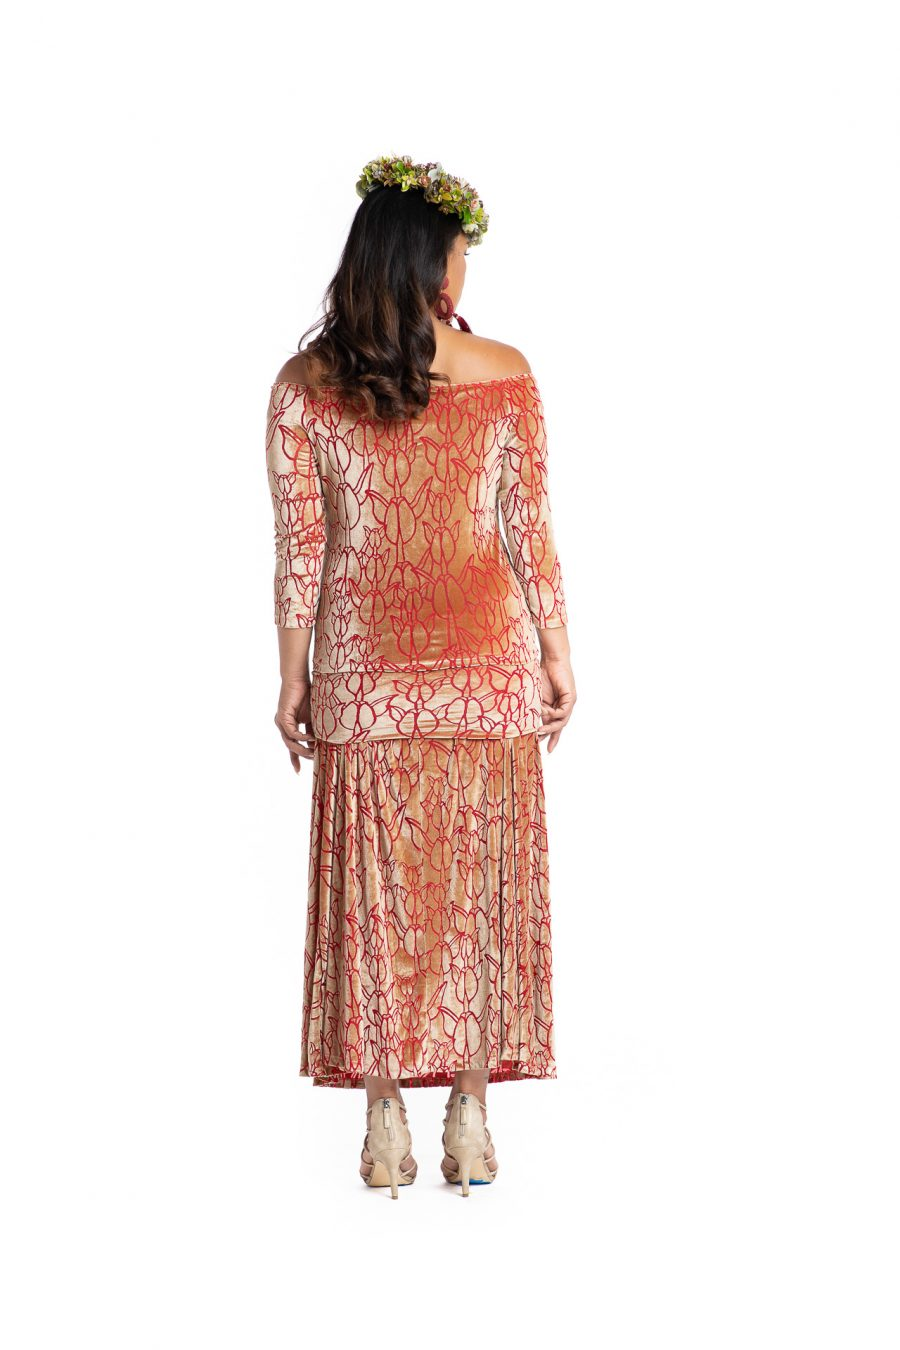 Model wearing Poohiwi Dress in Apricot - Back View